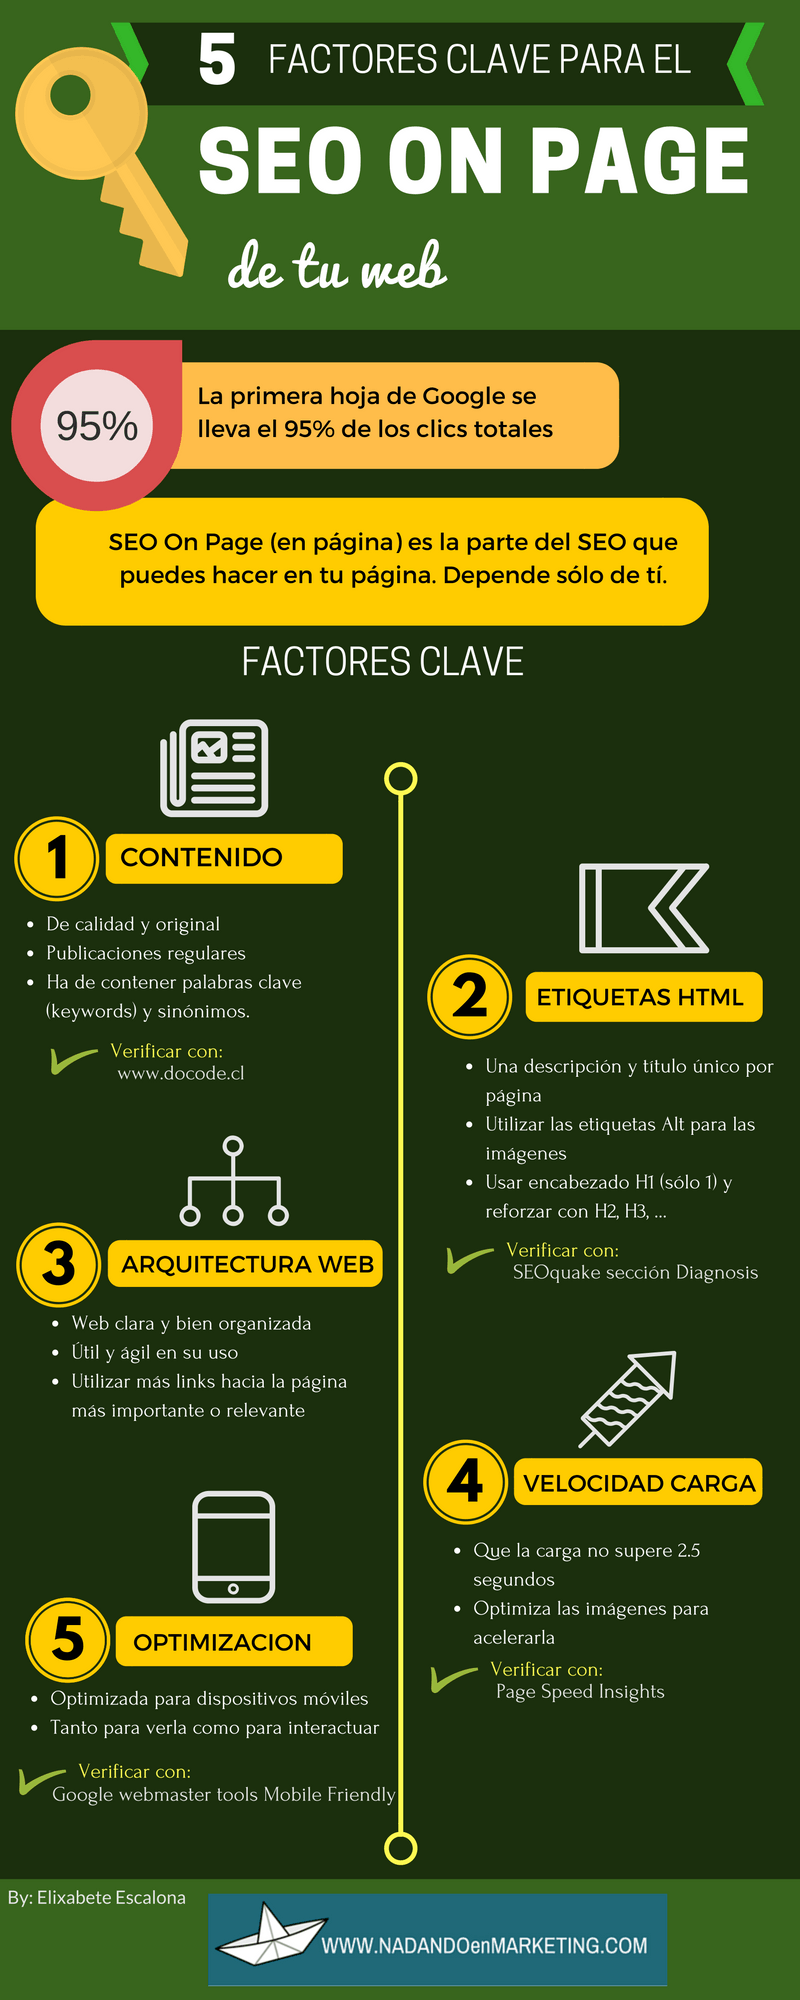 5 factores clave para el SEO On page